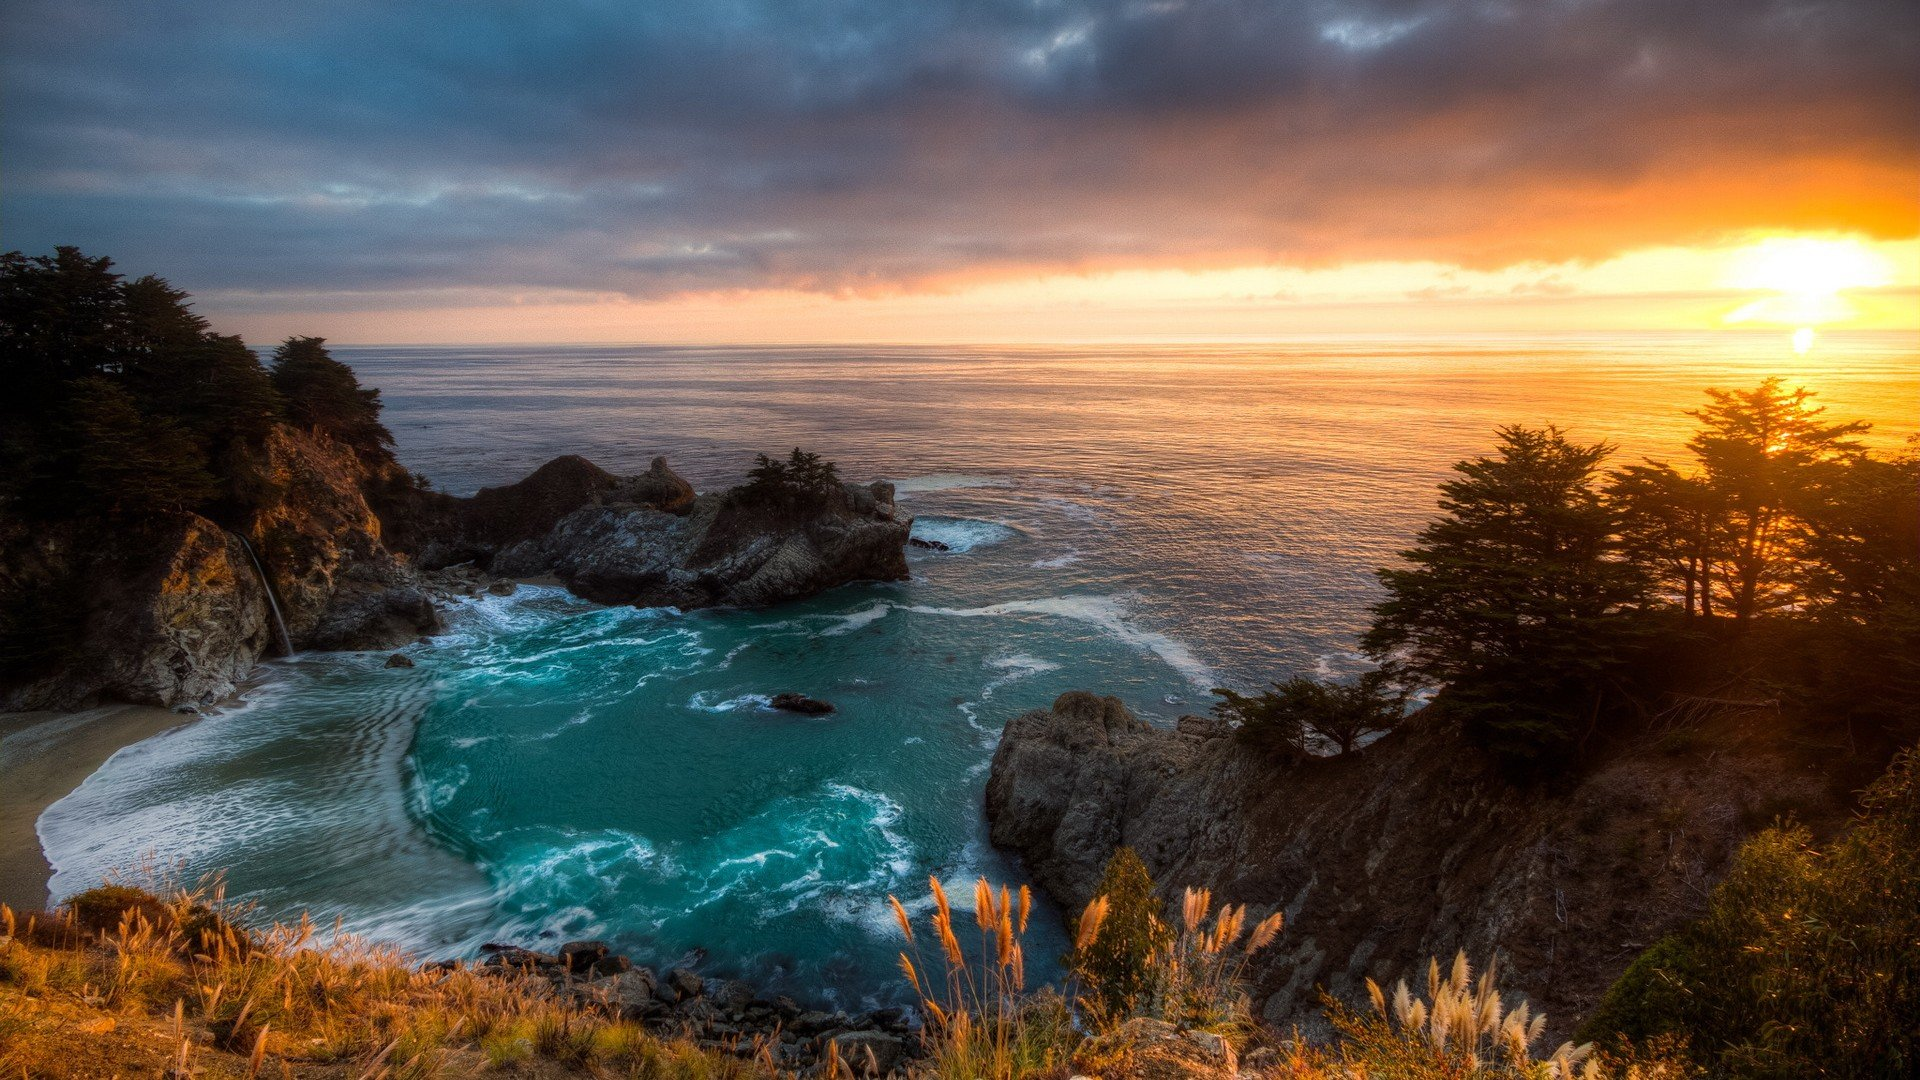 Victoria Falls Wallpapers High Resolution Sunset Mcway Falls California Wallpaper 1920x1080